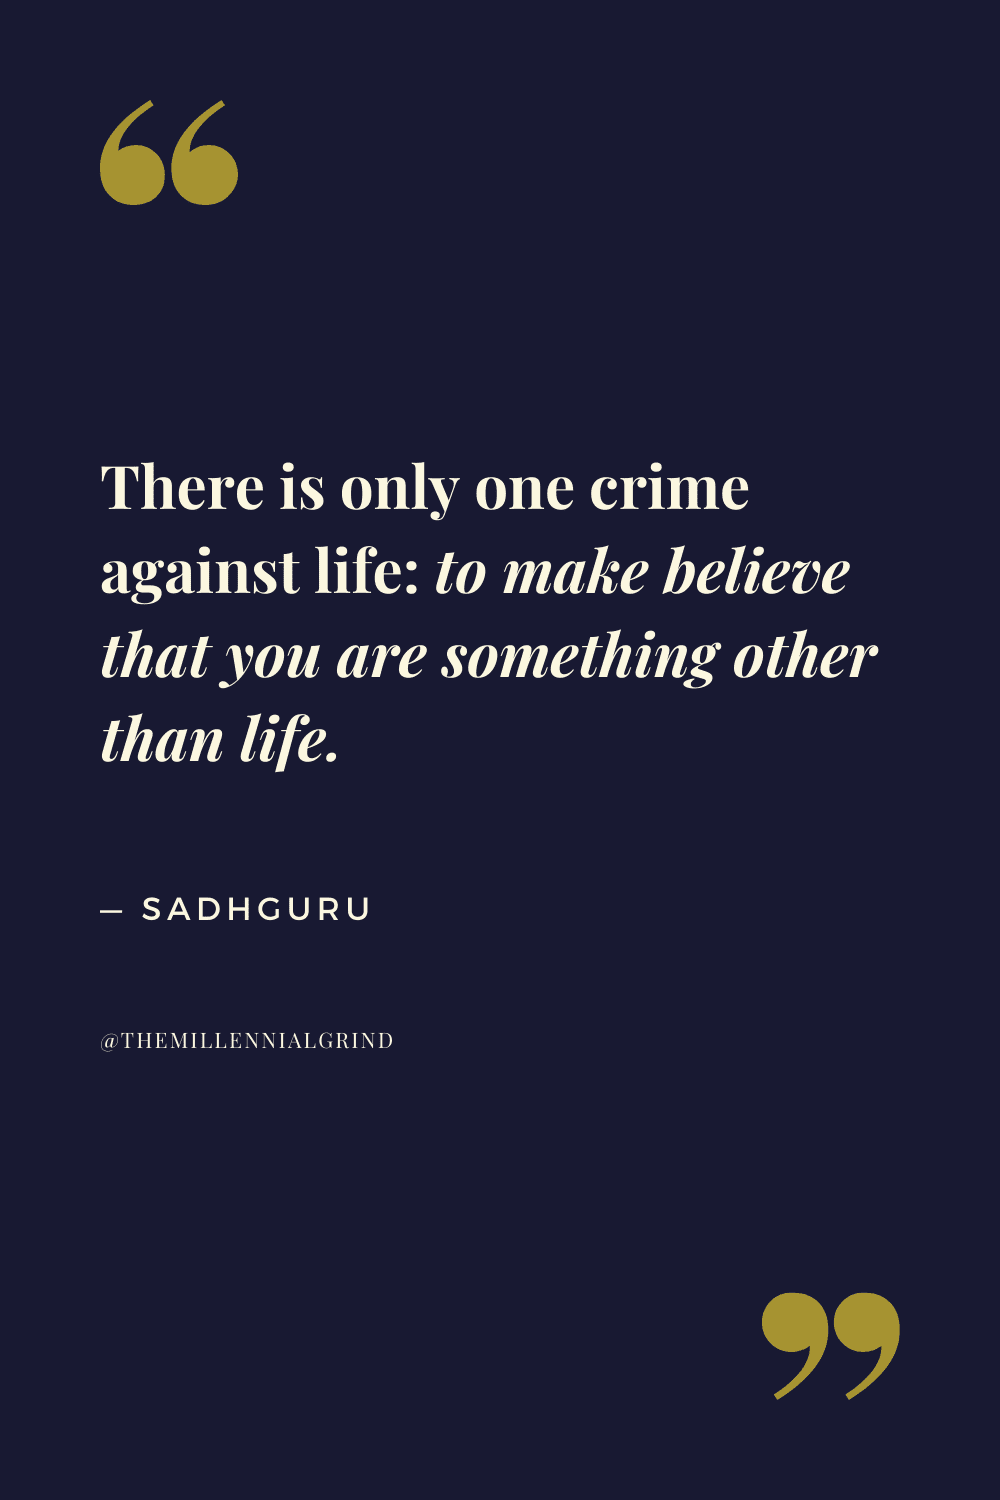 There is only one crime against life: to make believe that you are something other than life.